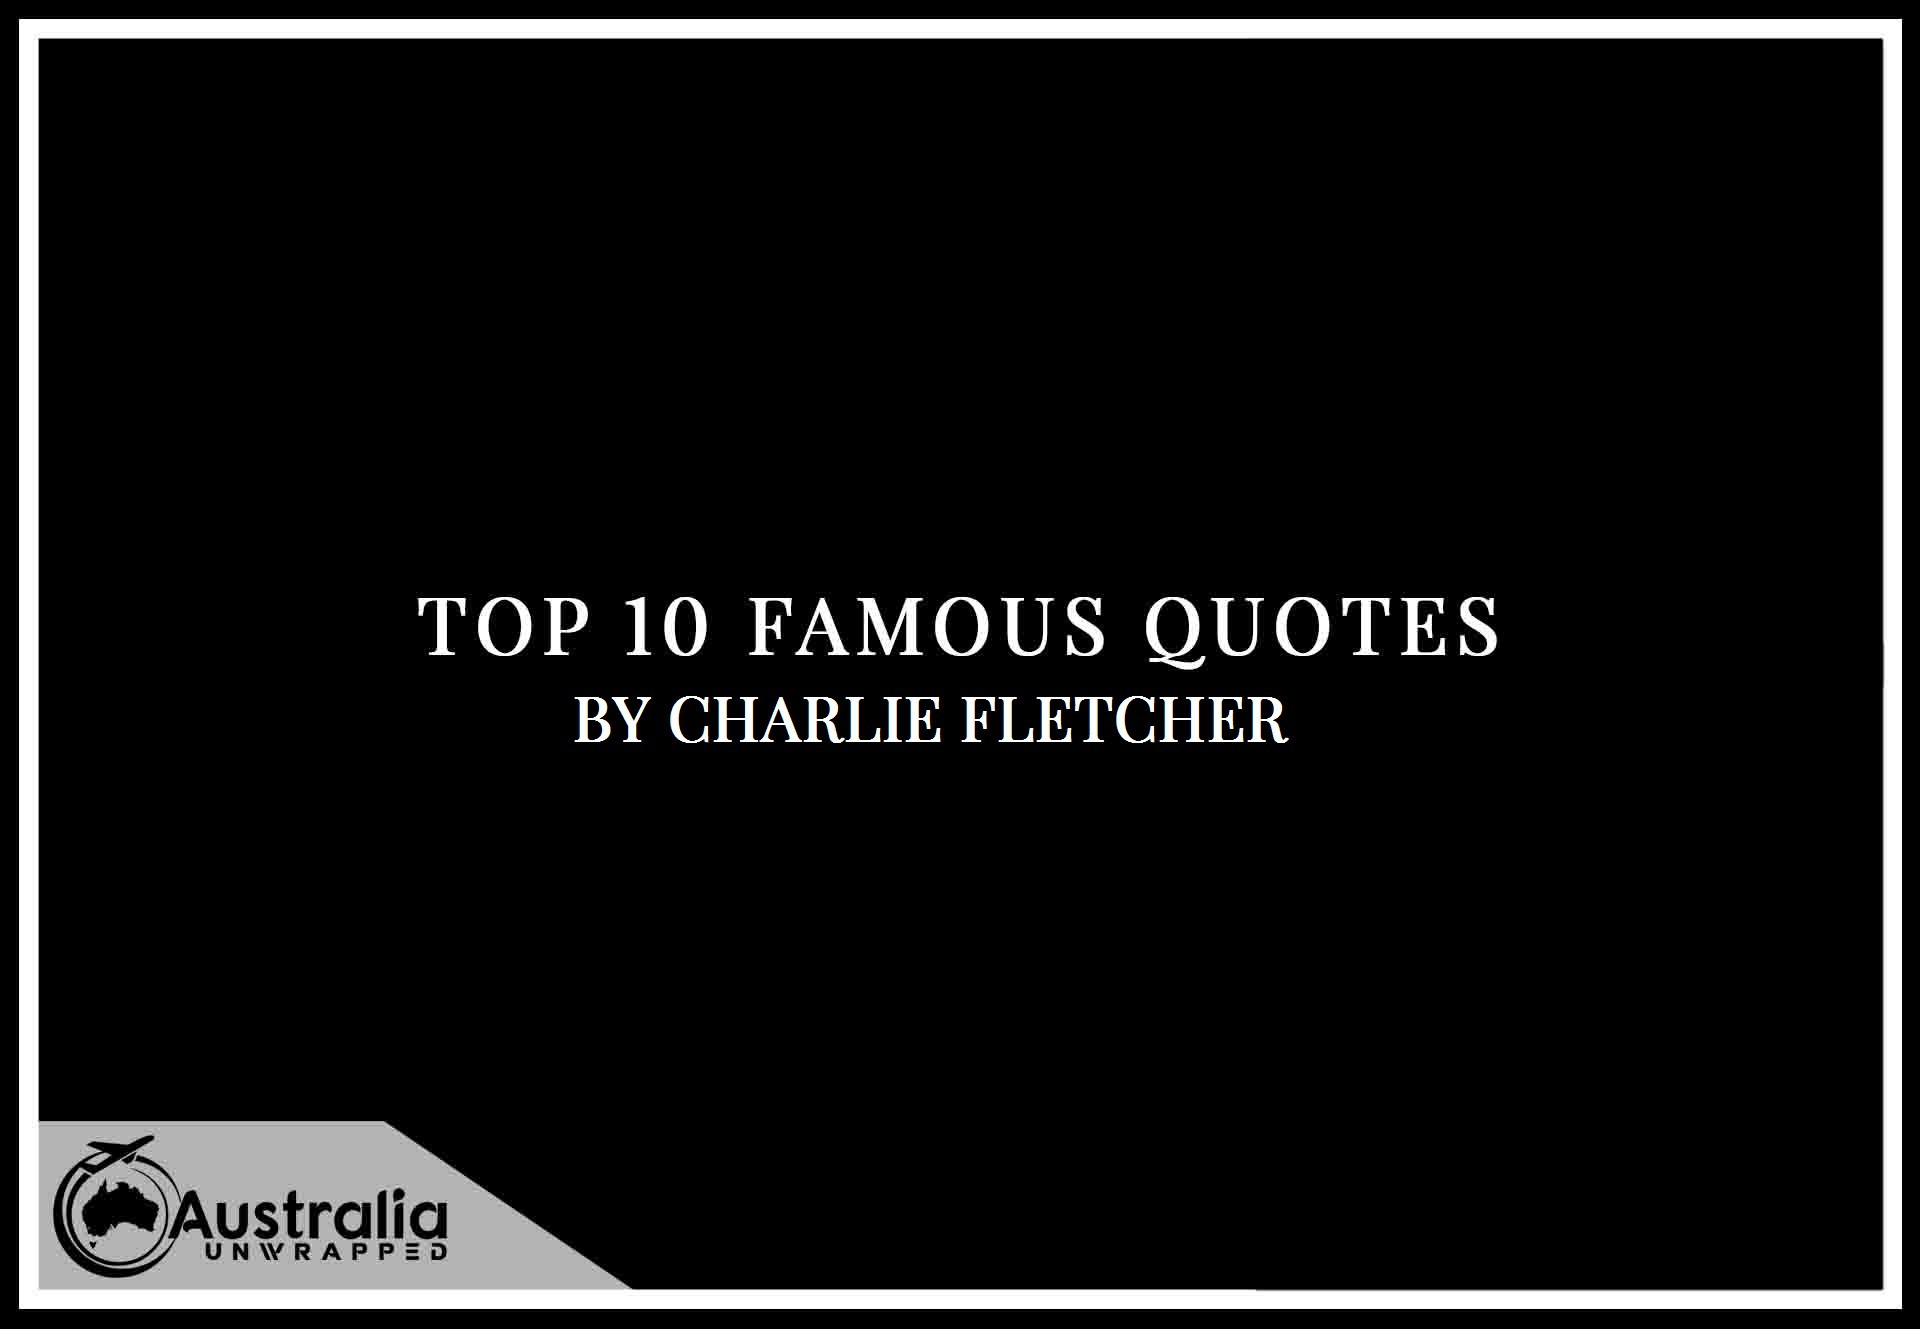 Charlie Fletcher's Top 10 Popular and Famous Quotes